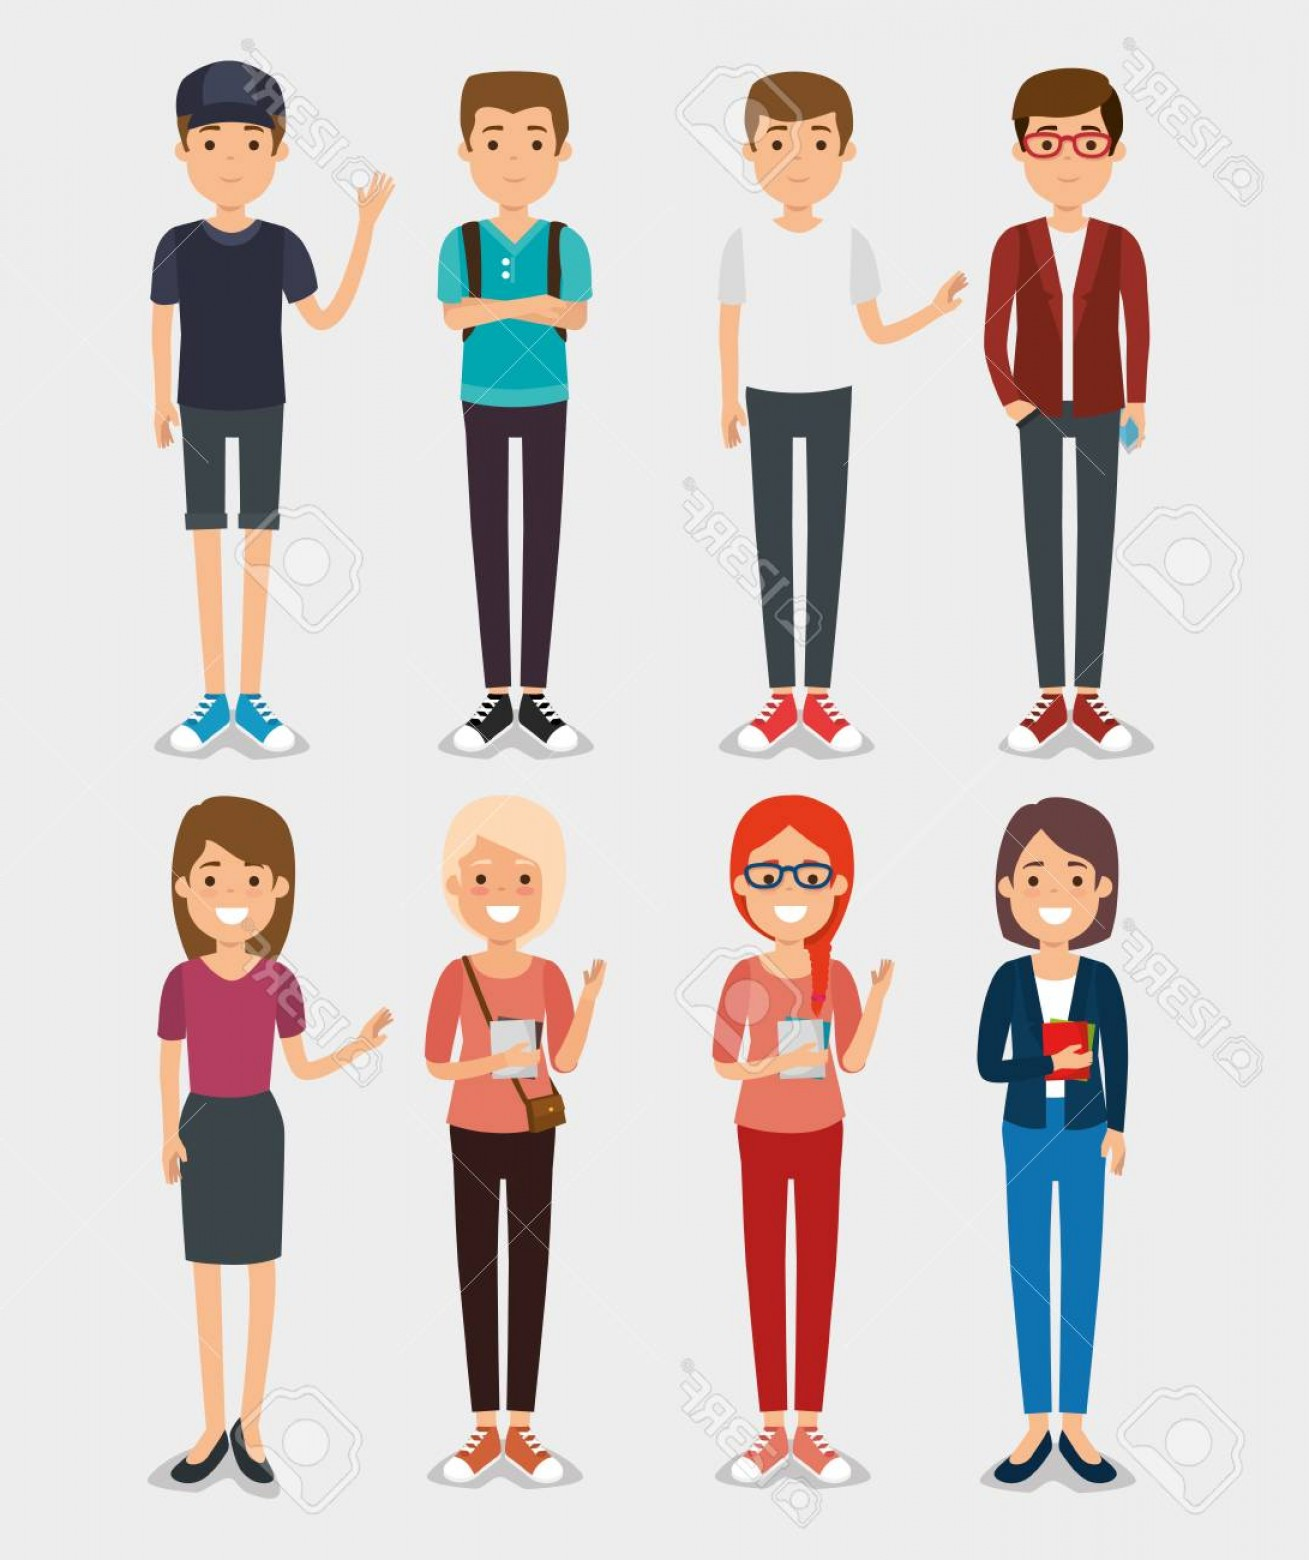 Millennial Vector: Photostock Vector Set Of Millennial Young People Vector Illustration Graphic Design